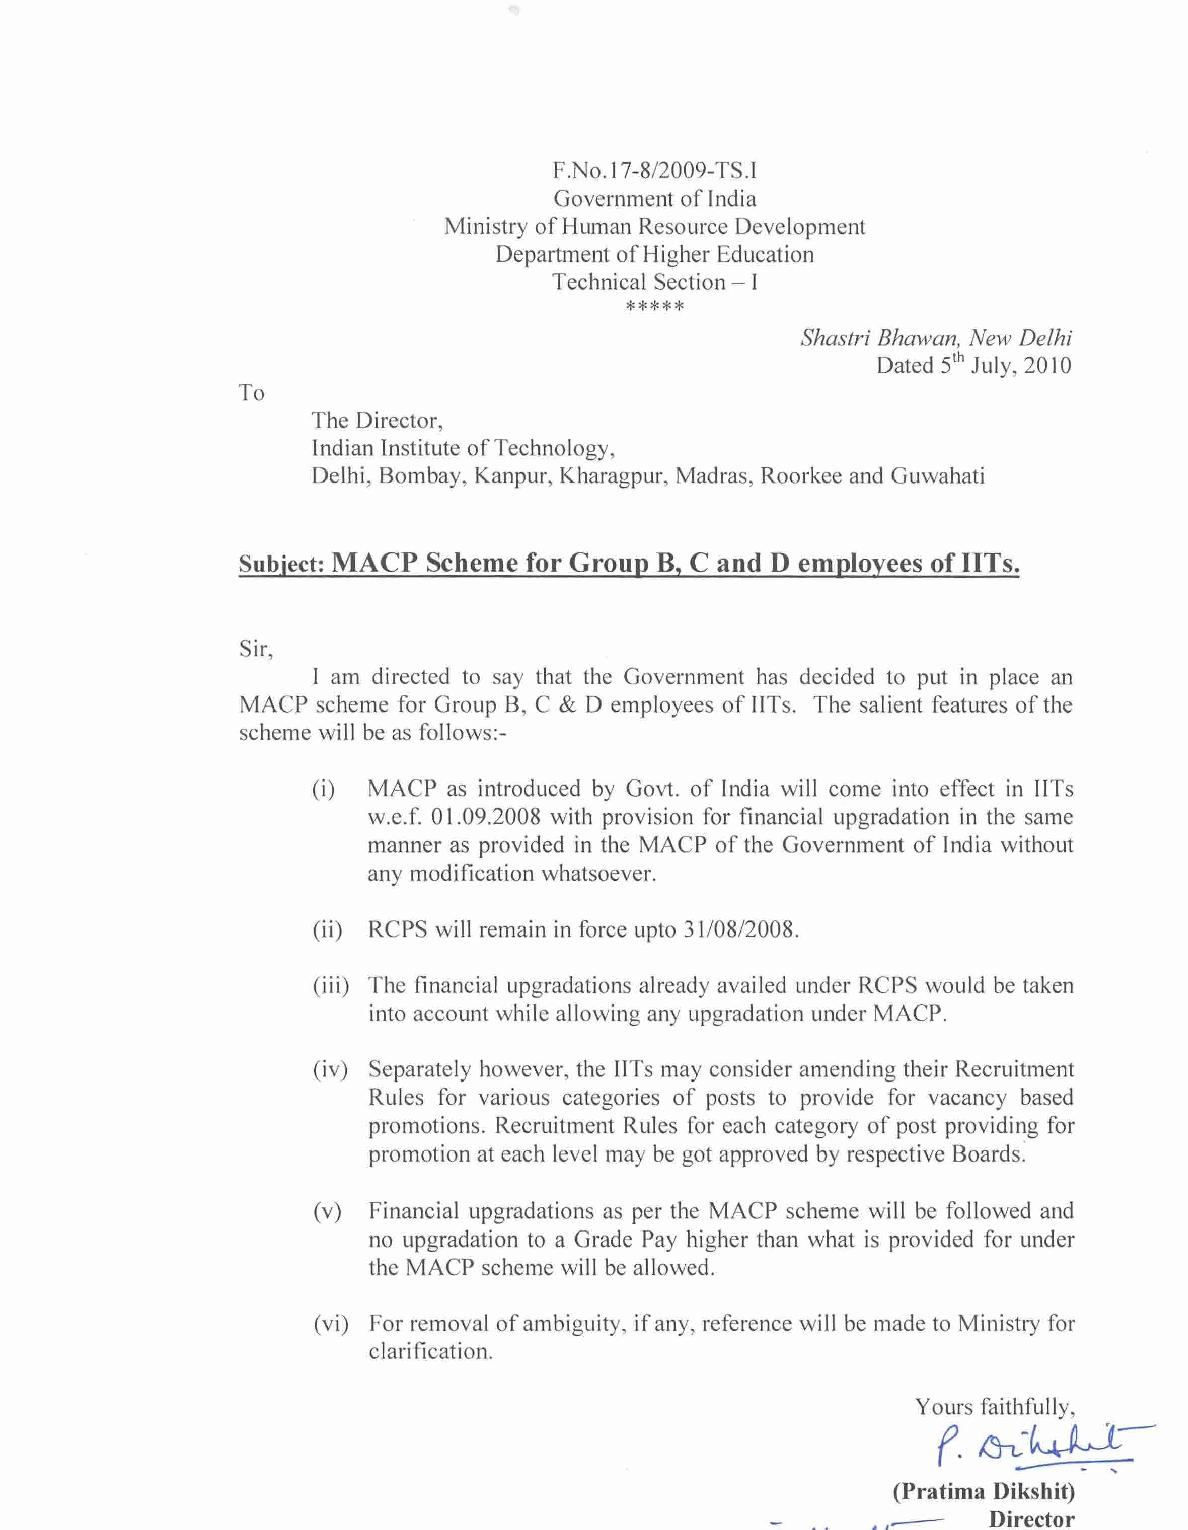 Central Government Employees News: MACP Scheme for Group B